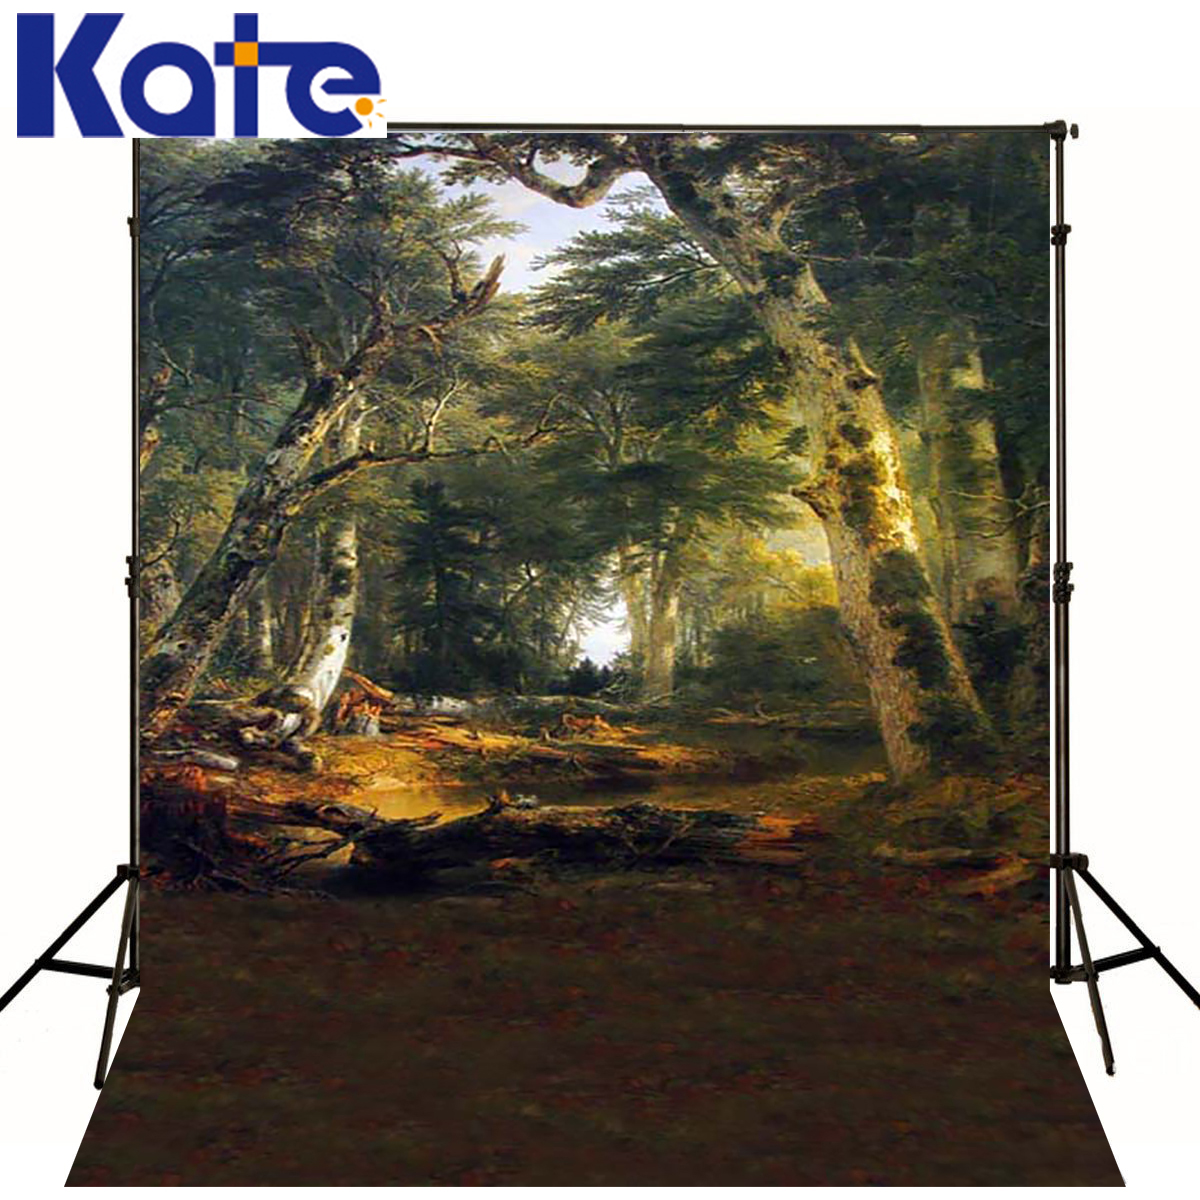 KATE Photo Background Forest Photography Backdrops Wedding Backdrops Scenery Background Newborn Backdrops for Photo Studio